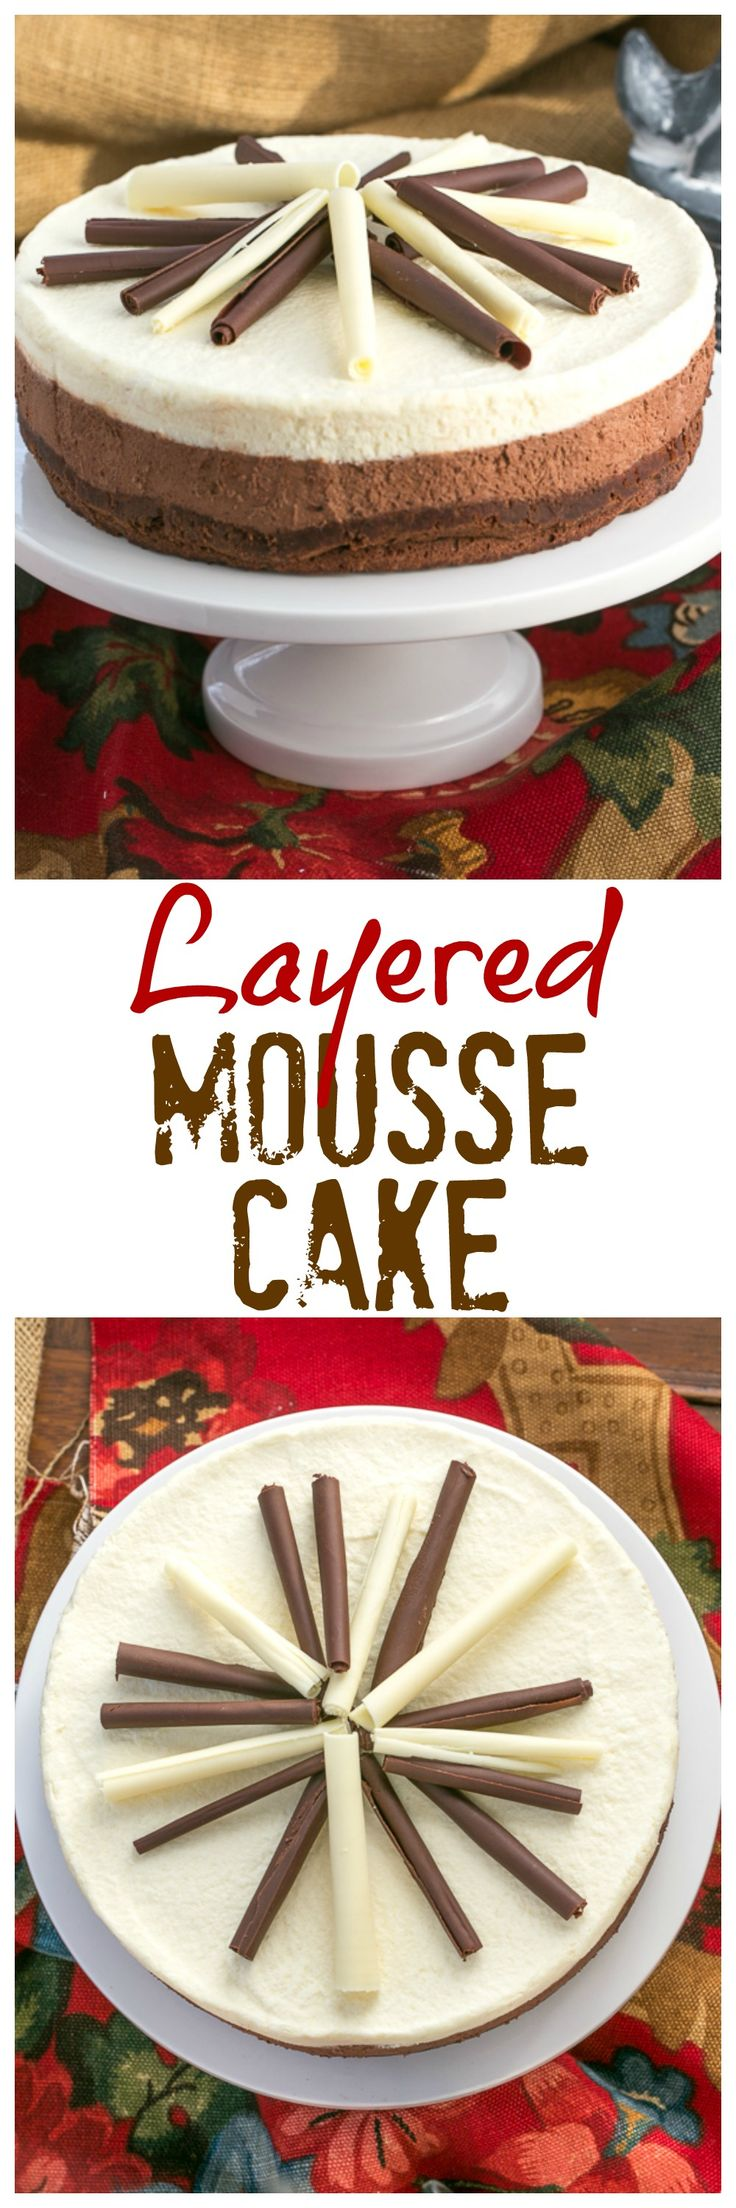 Layered Mousse Cake   An exquisite triple-layered mousse cake that's perfect for the chocoholics in your life! @lizzydo